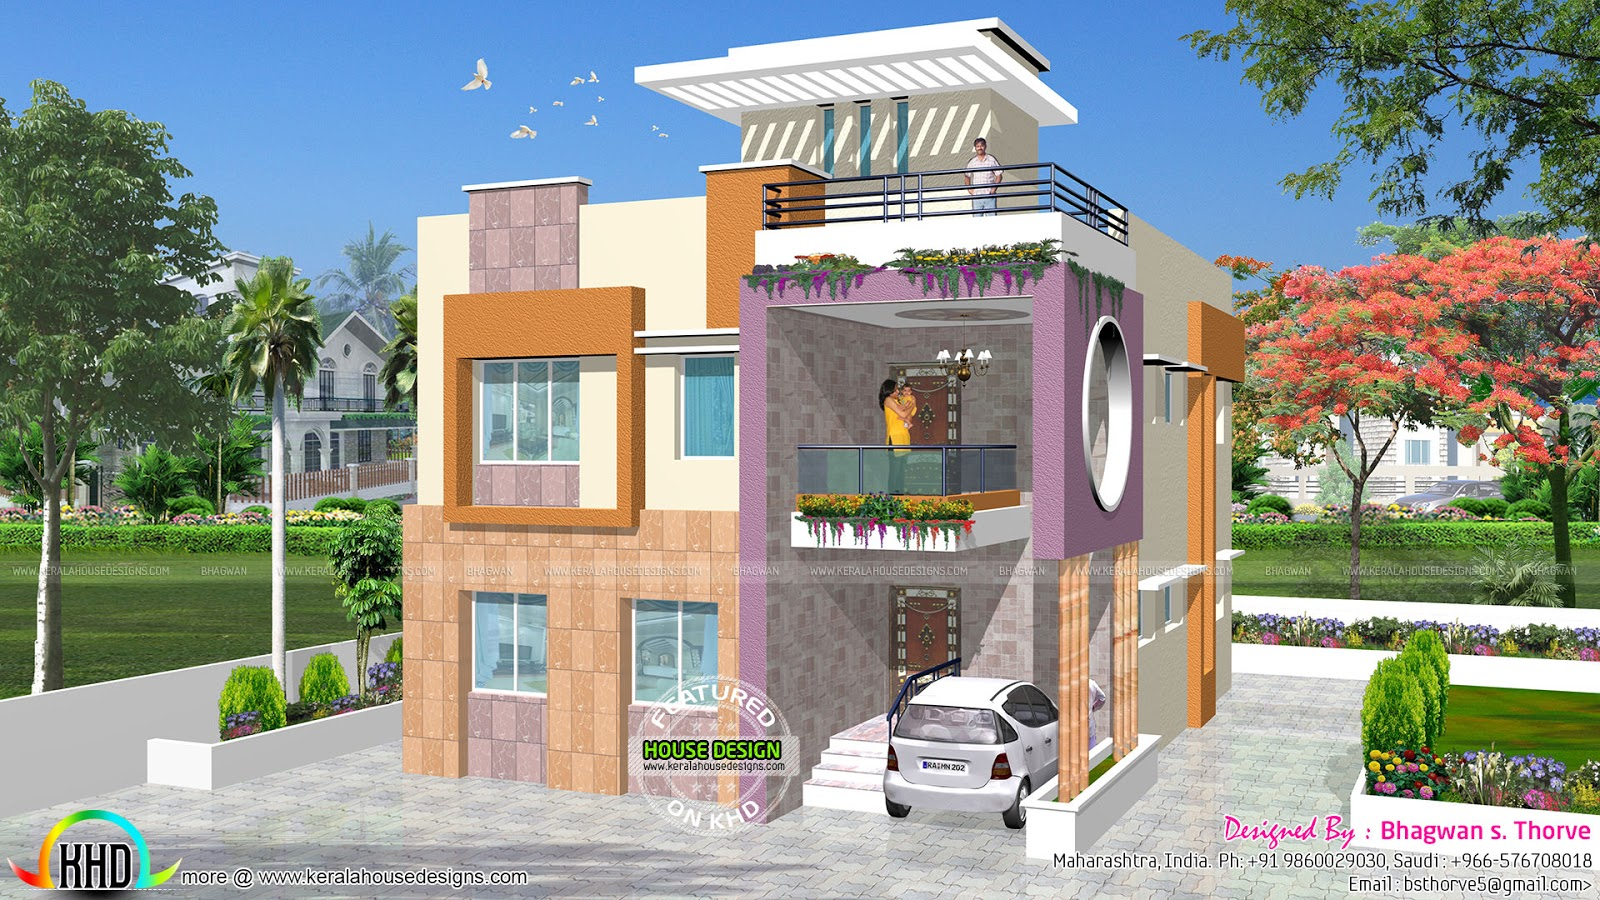 Modern duplex house achitecture kerala home design and for Modern duplex house designs